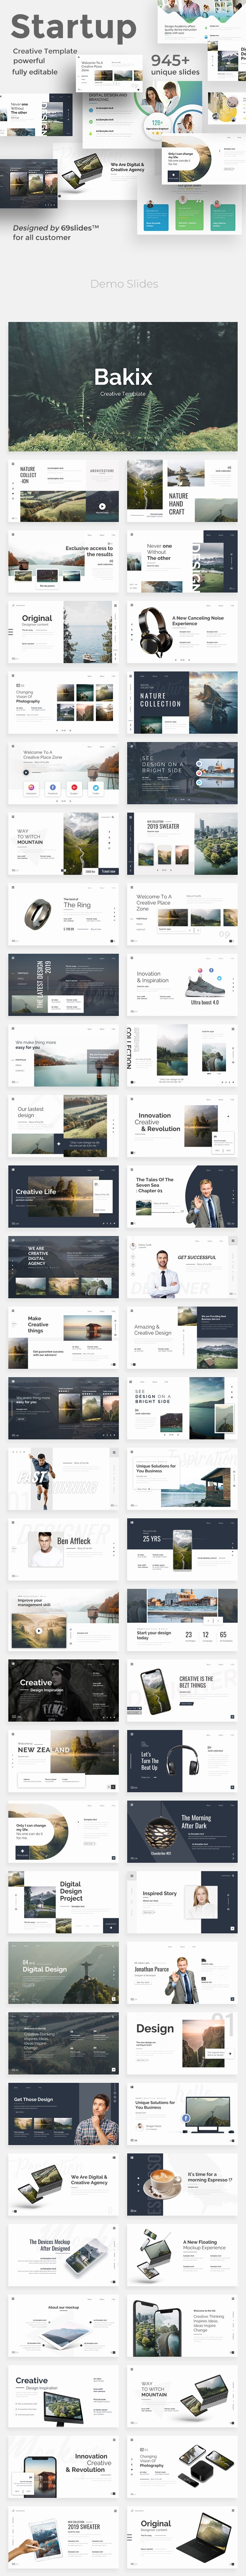 3 in 1 Easy Startup Bundle Pitch Deck Powerpoint Template - Creative PowerPoint Templates